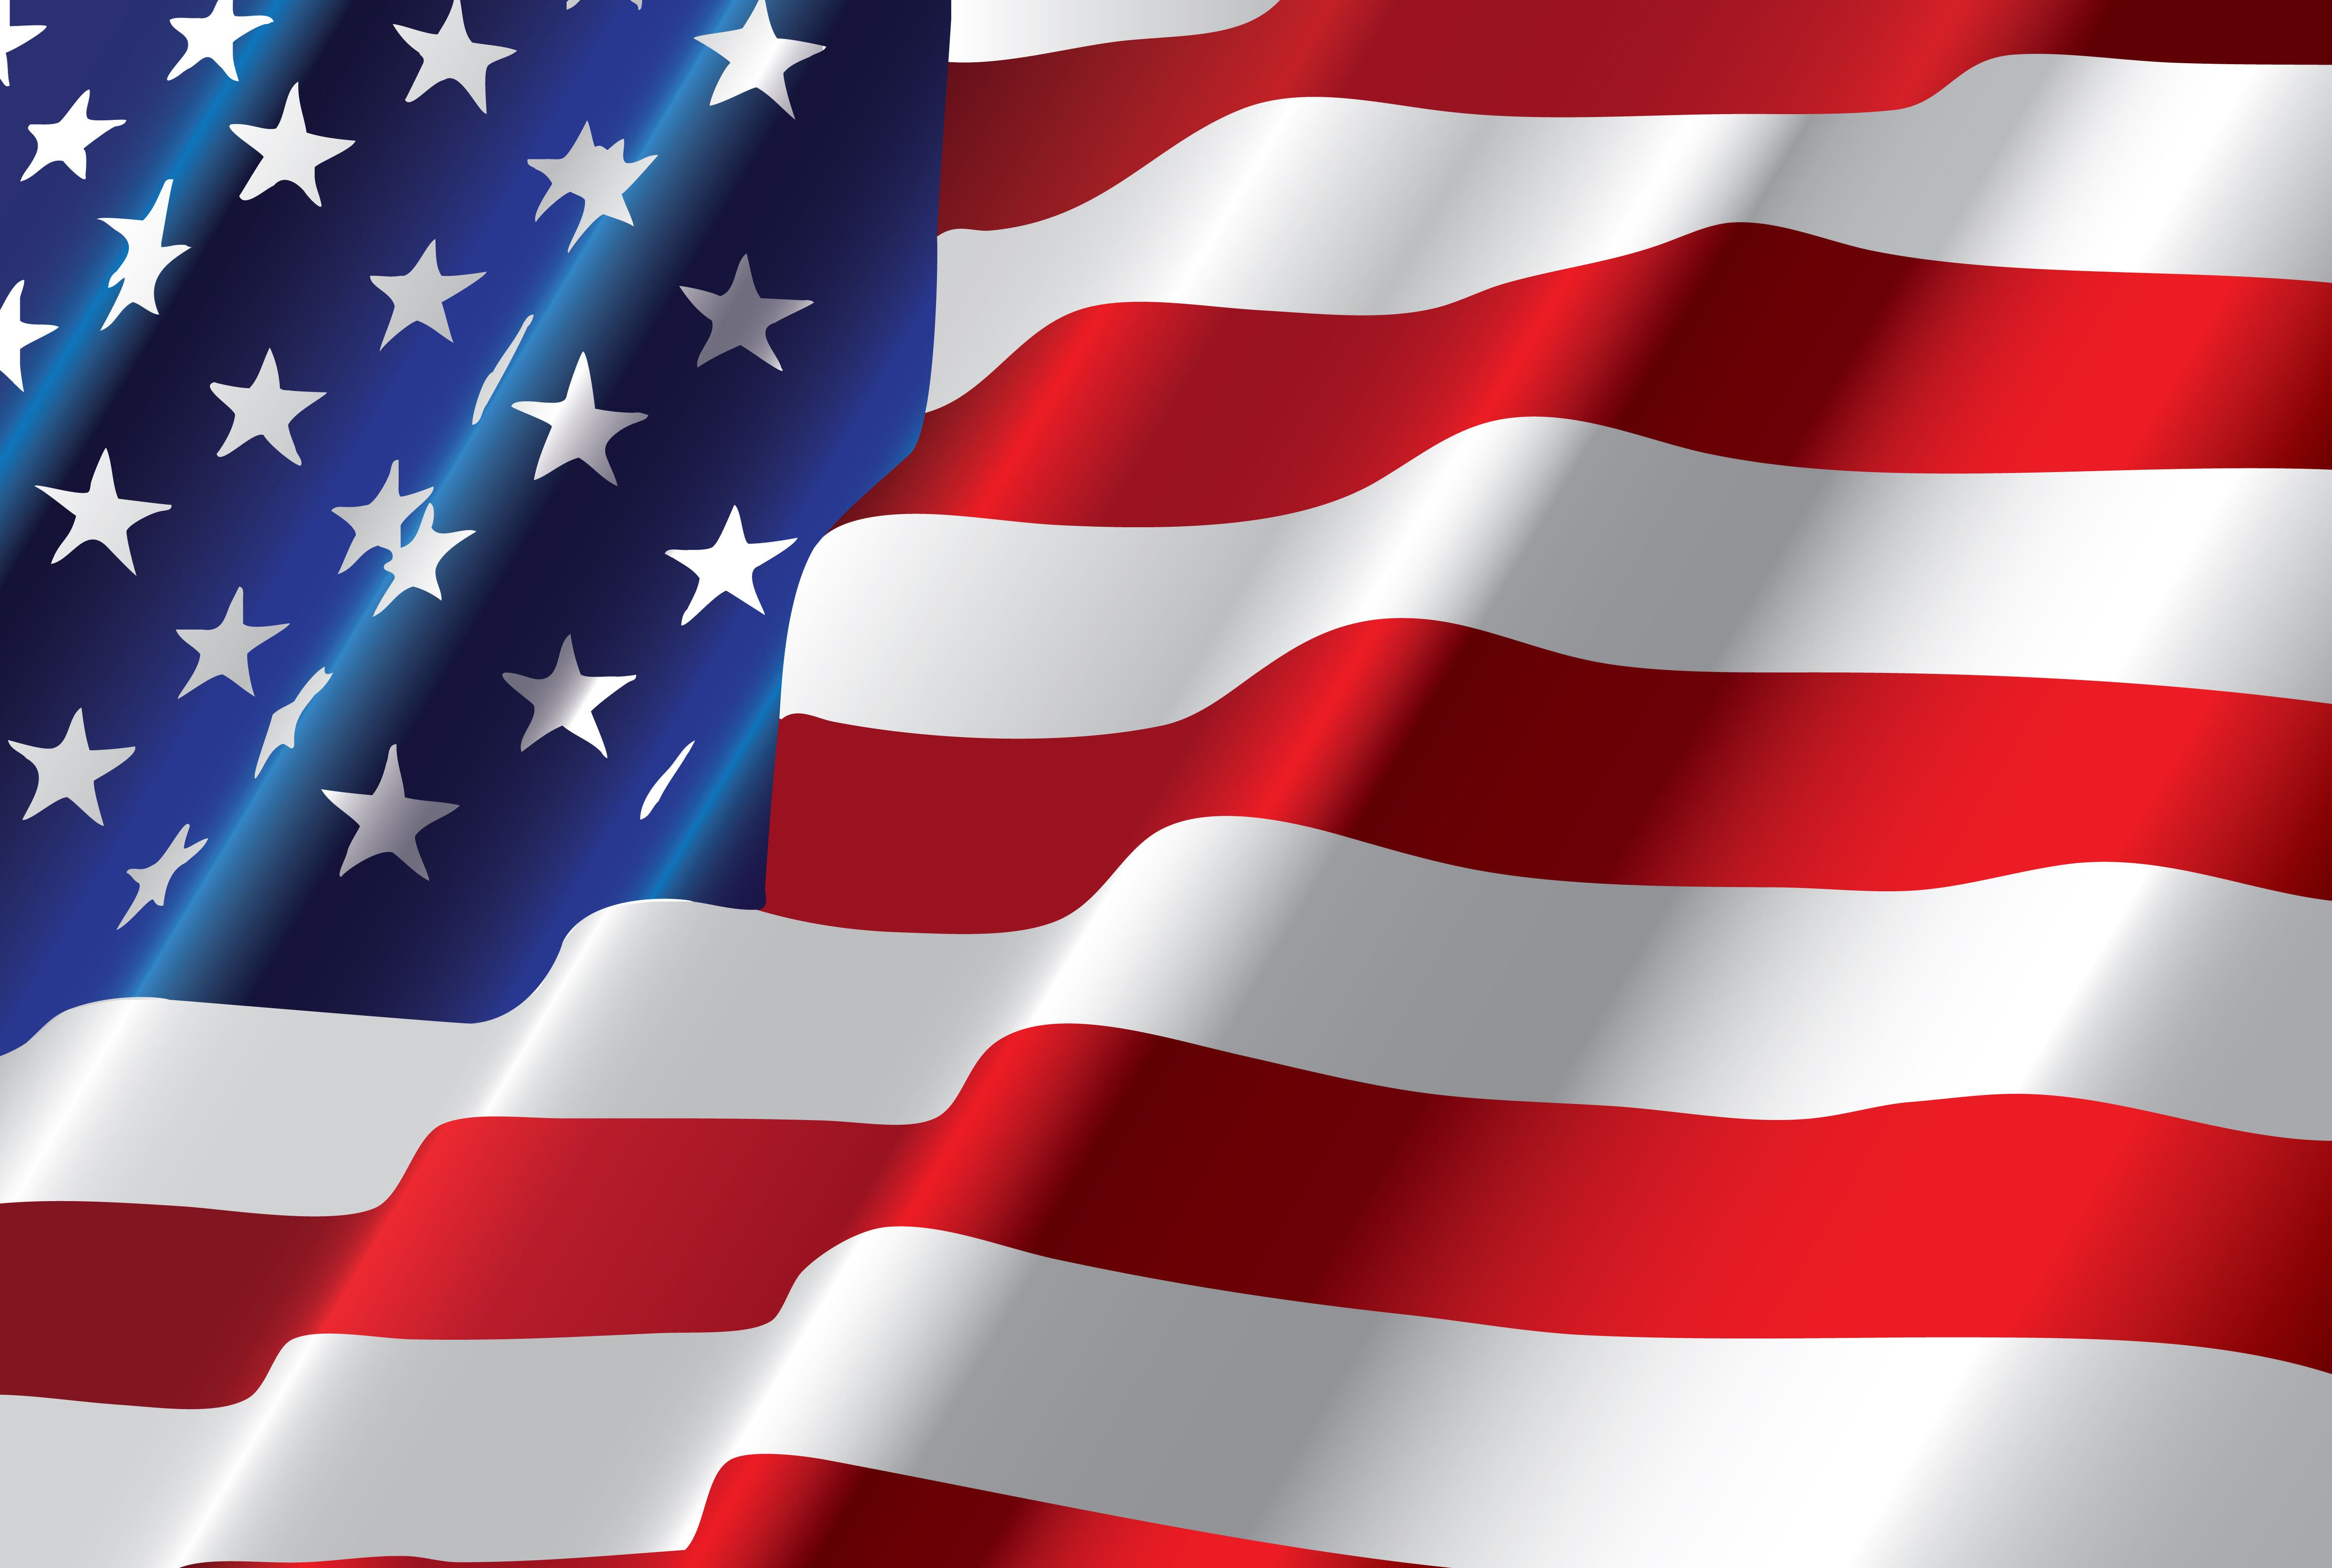 Hd wallpaper usa flag - American Flag Wallpapers And Background